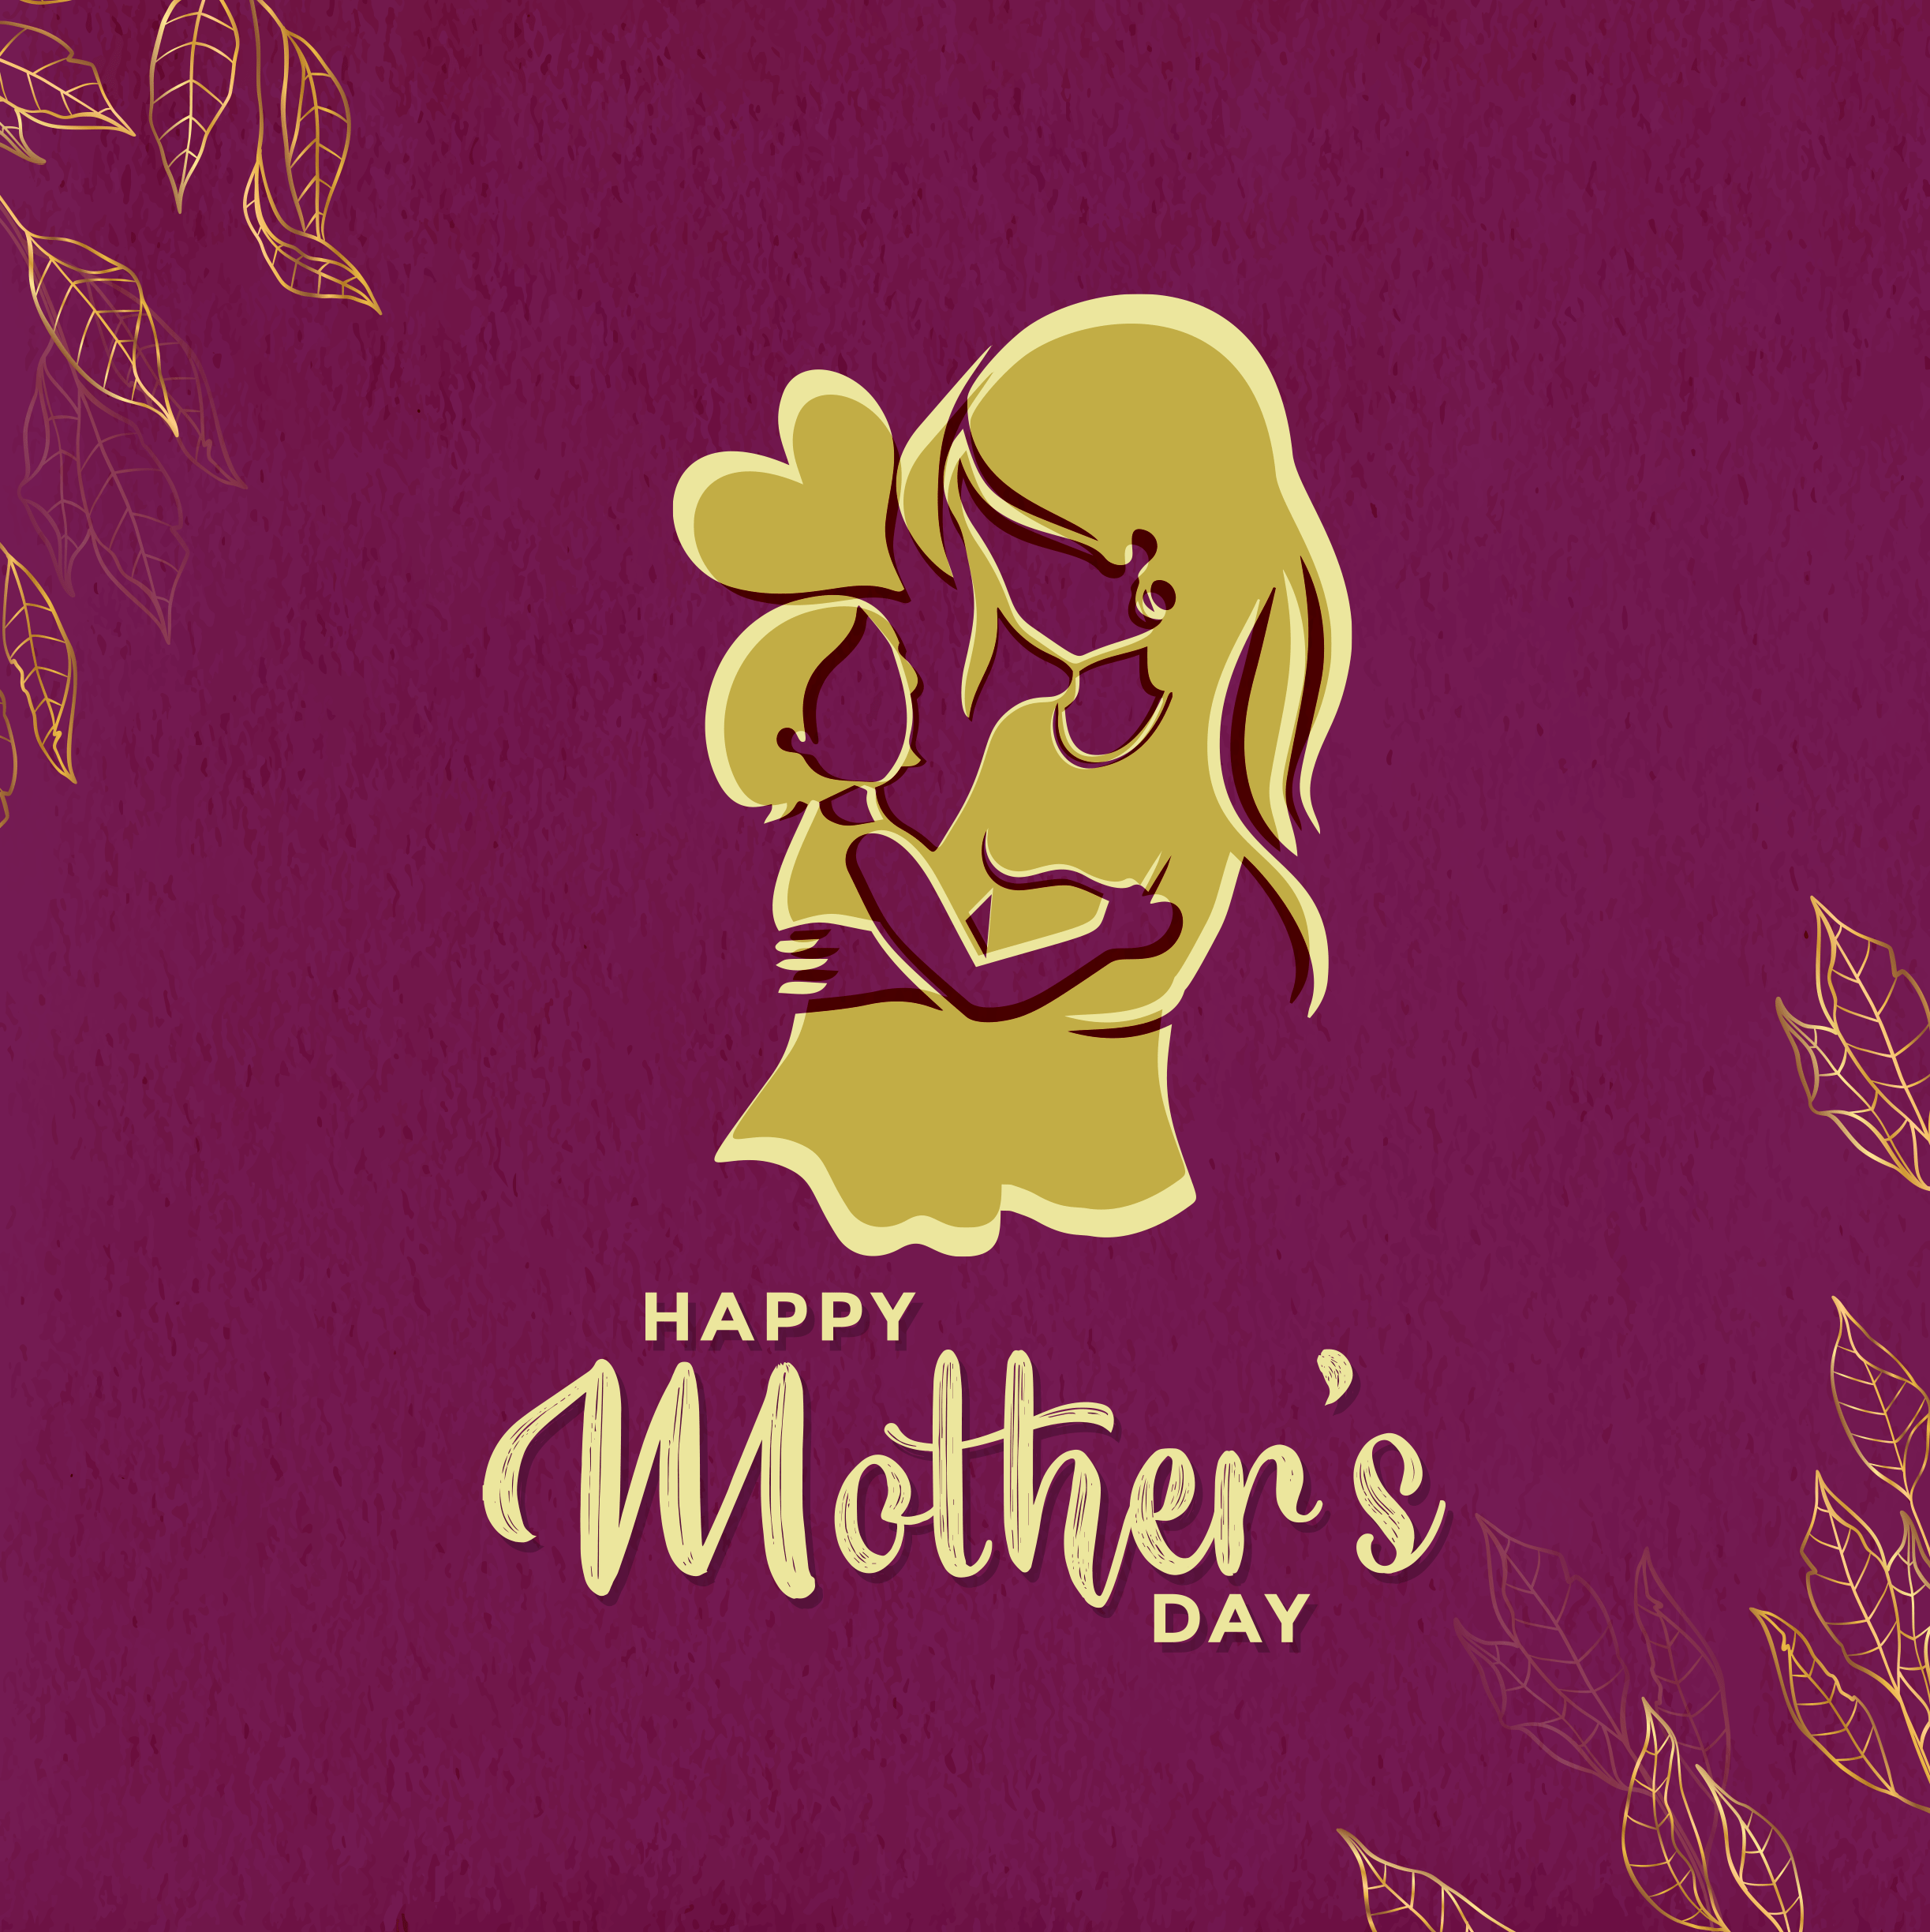 Mothers day greeting mother daughter 2446 x 2448